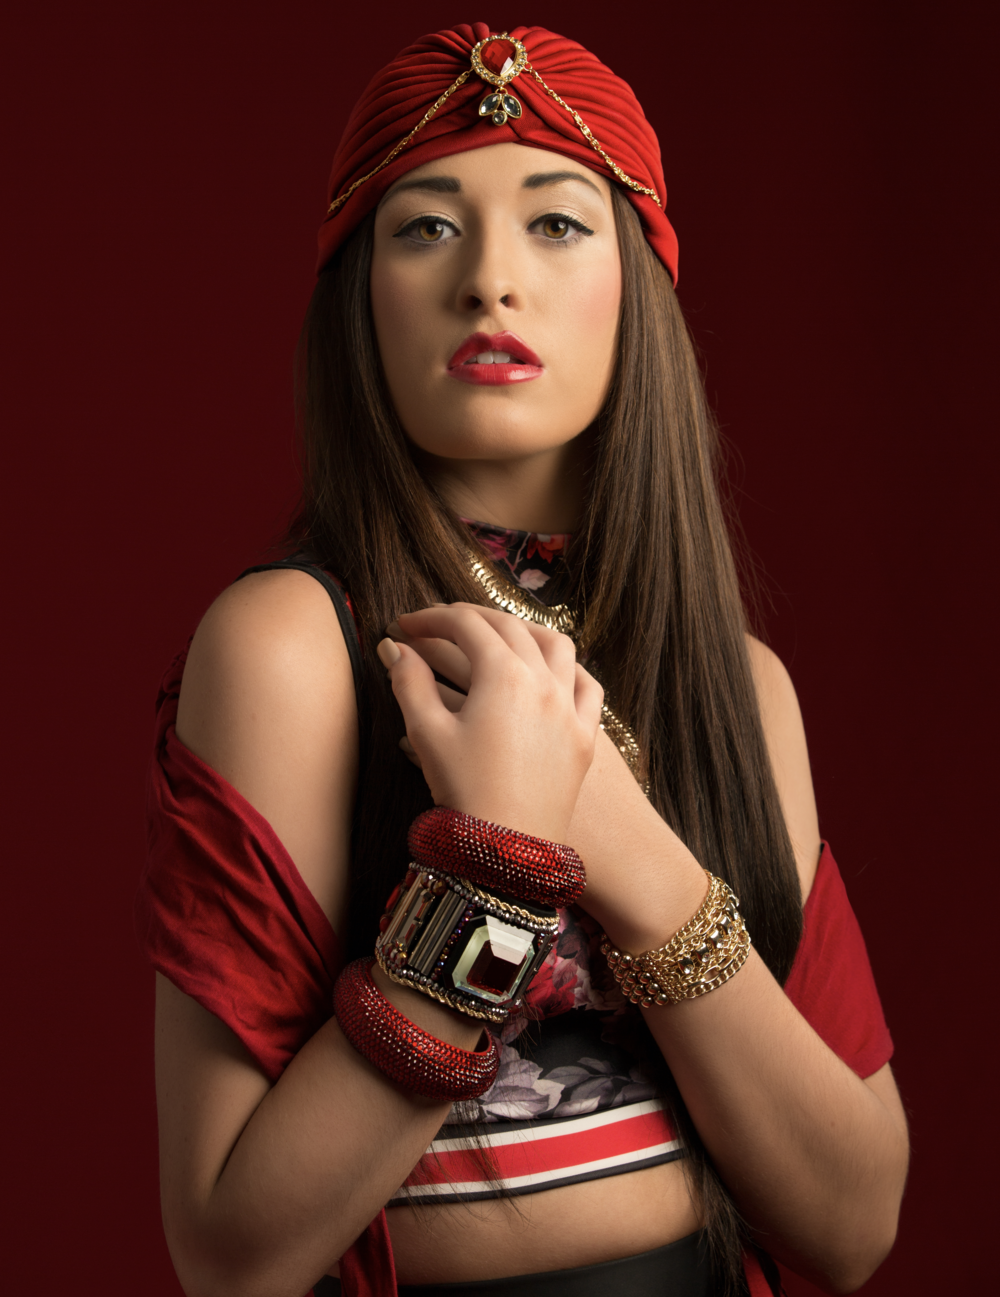 red+fashion+photography+model+myrtle+beach